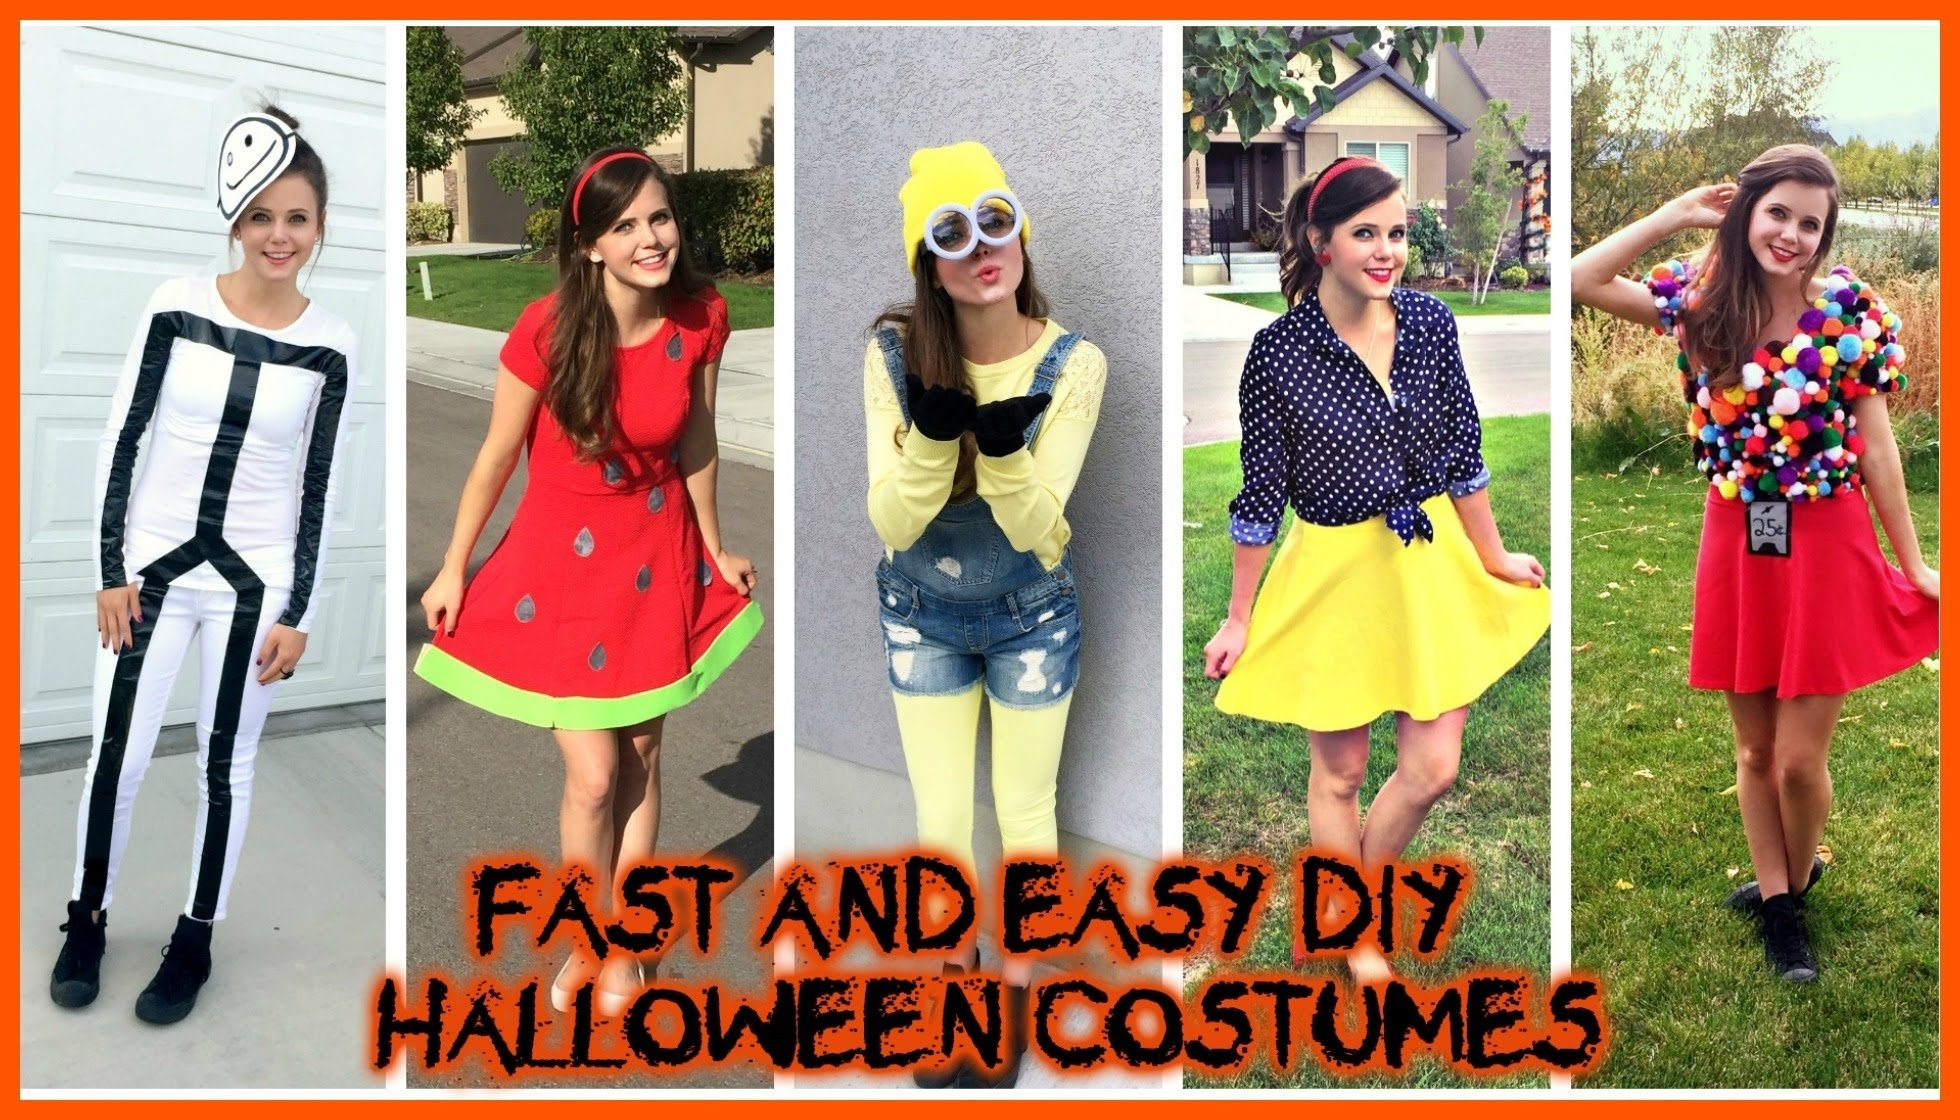 10 Attractive Good Last Minute Halloween Costume Ideas diy halloween costumes super easy cheap last minute ideas tiffany 18